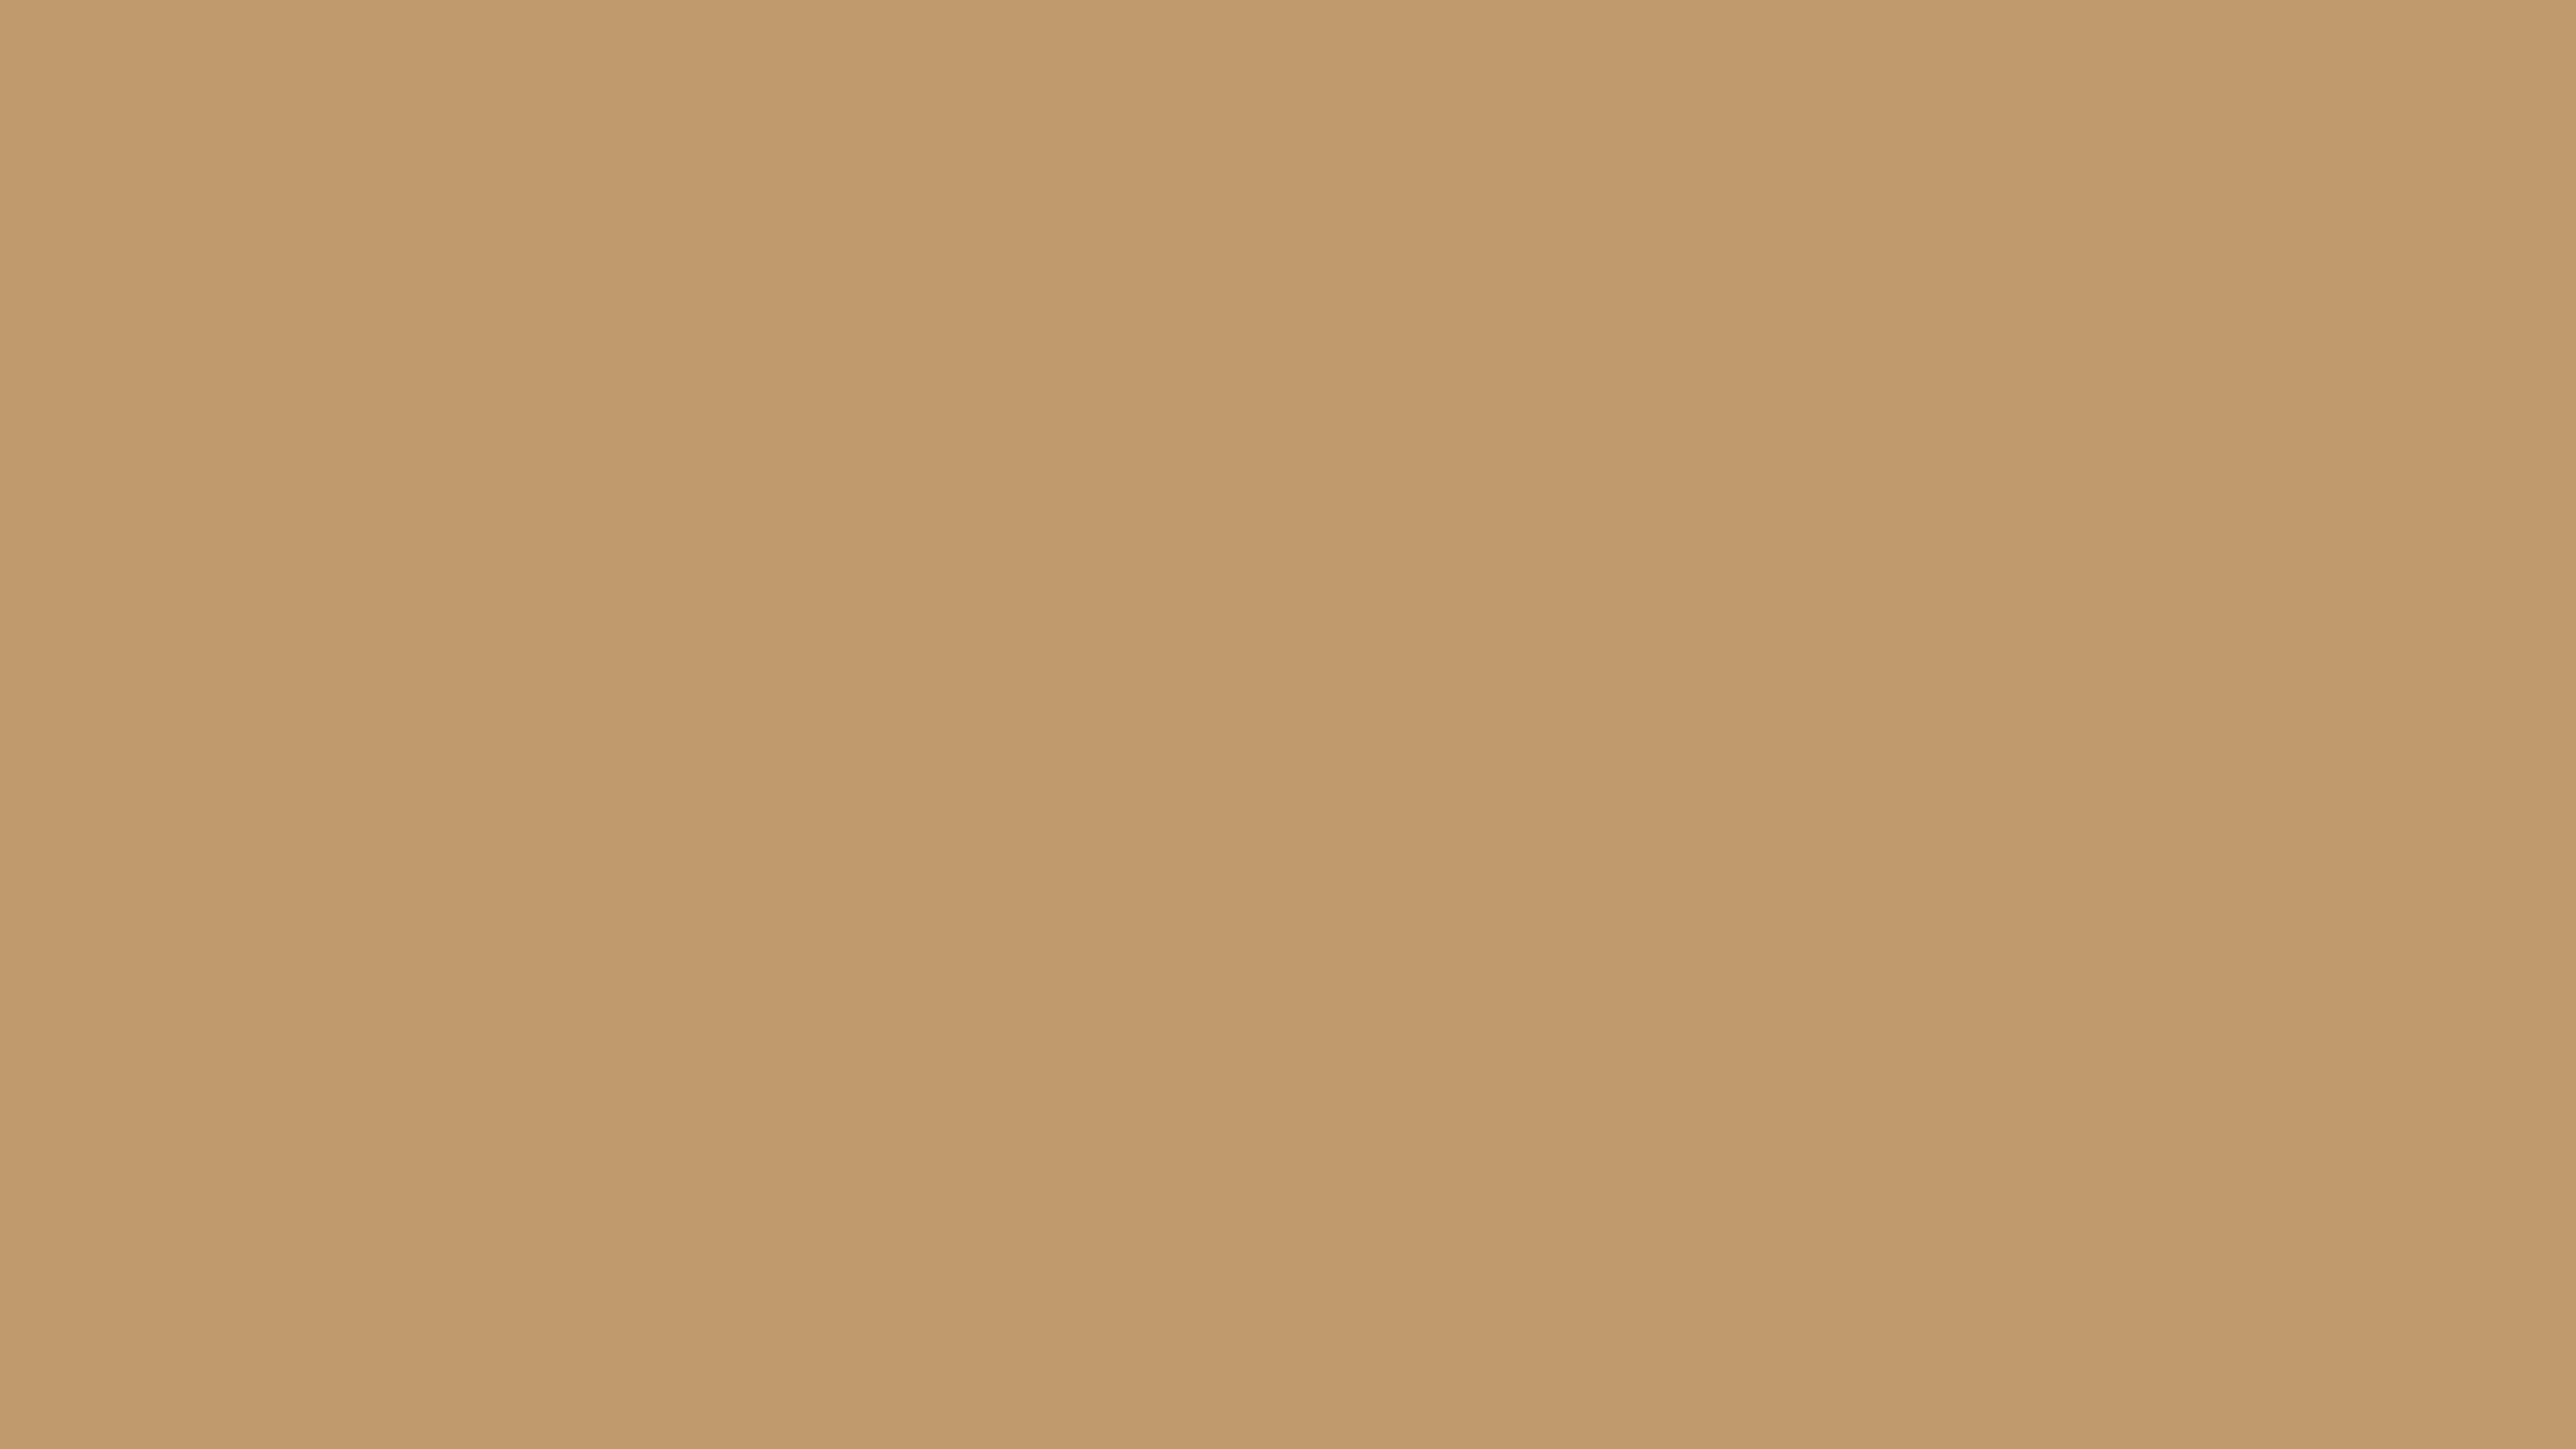 4096x2304 Wood Brown Solid Color Background